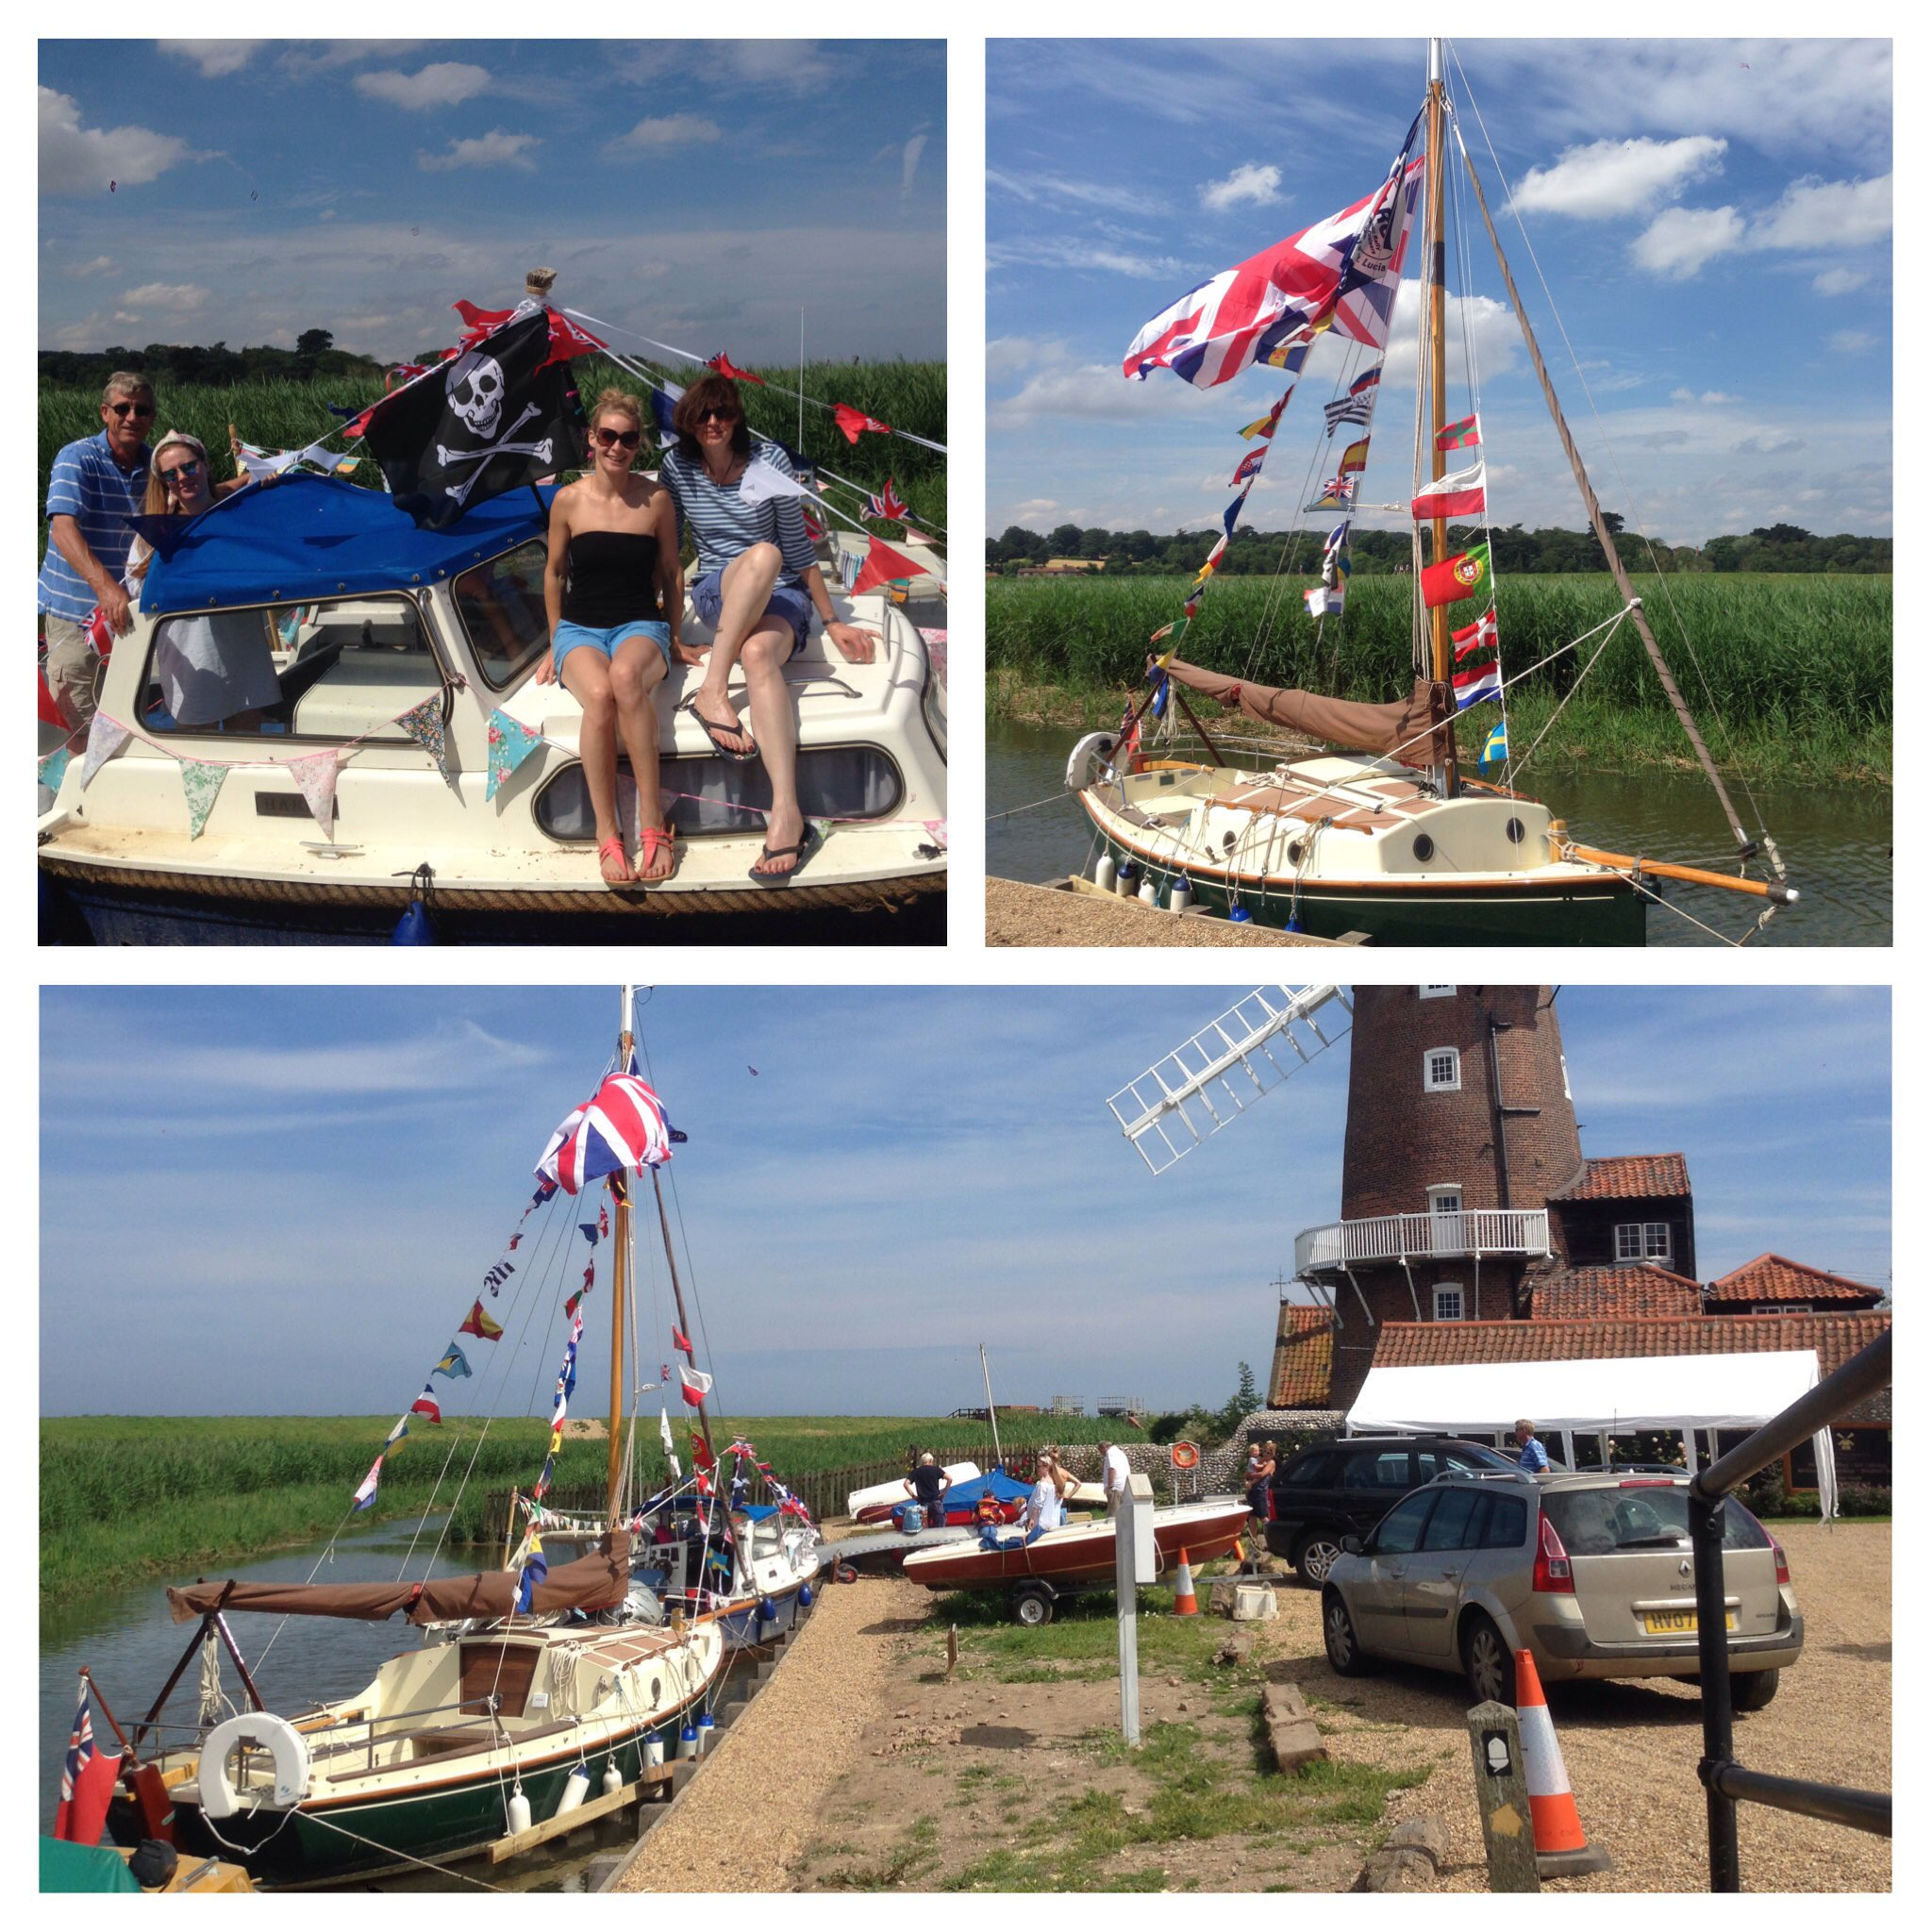 Cley Harbour Day | A boat-themed day out! | Cley quay (near the windmill), Cley-next-the-Sea, Norfolk. Park at village car park NR25 7RJ